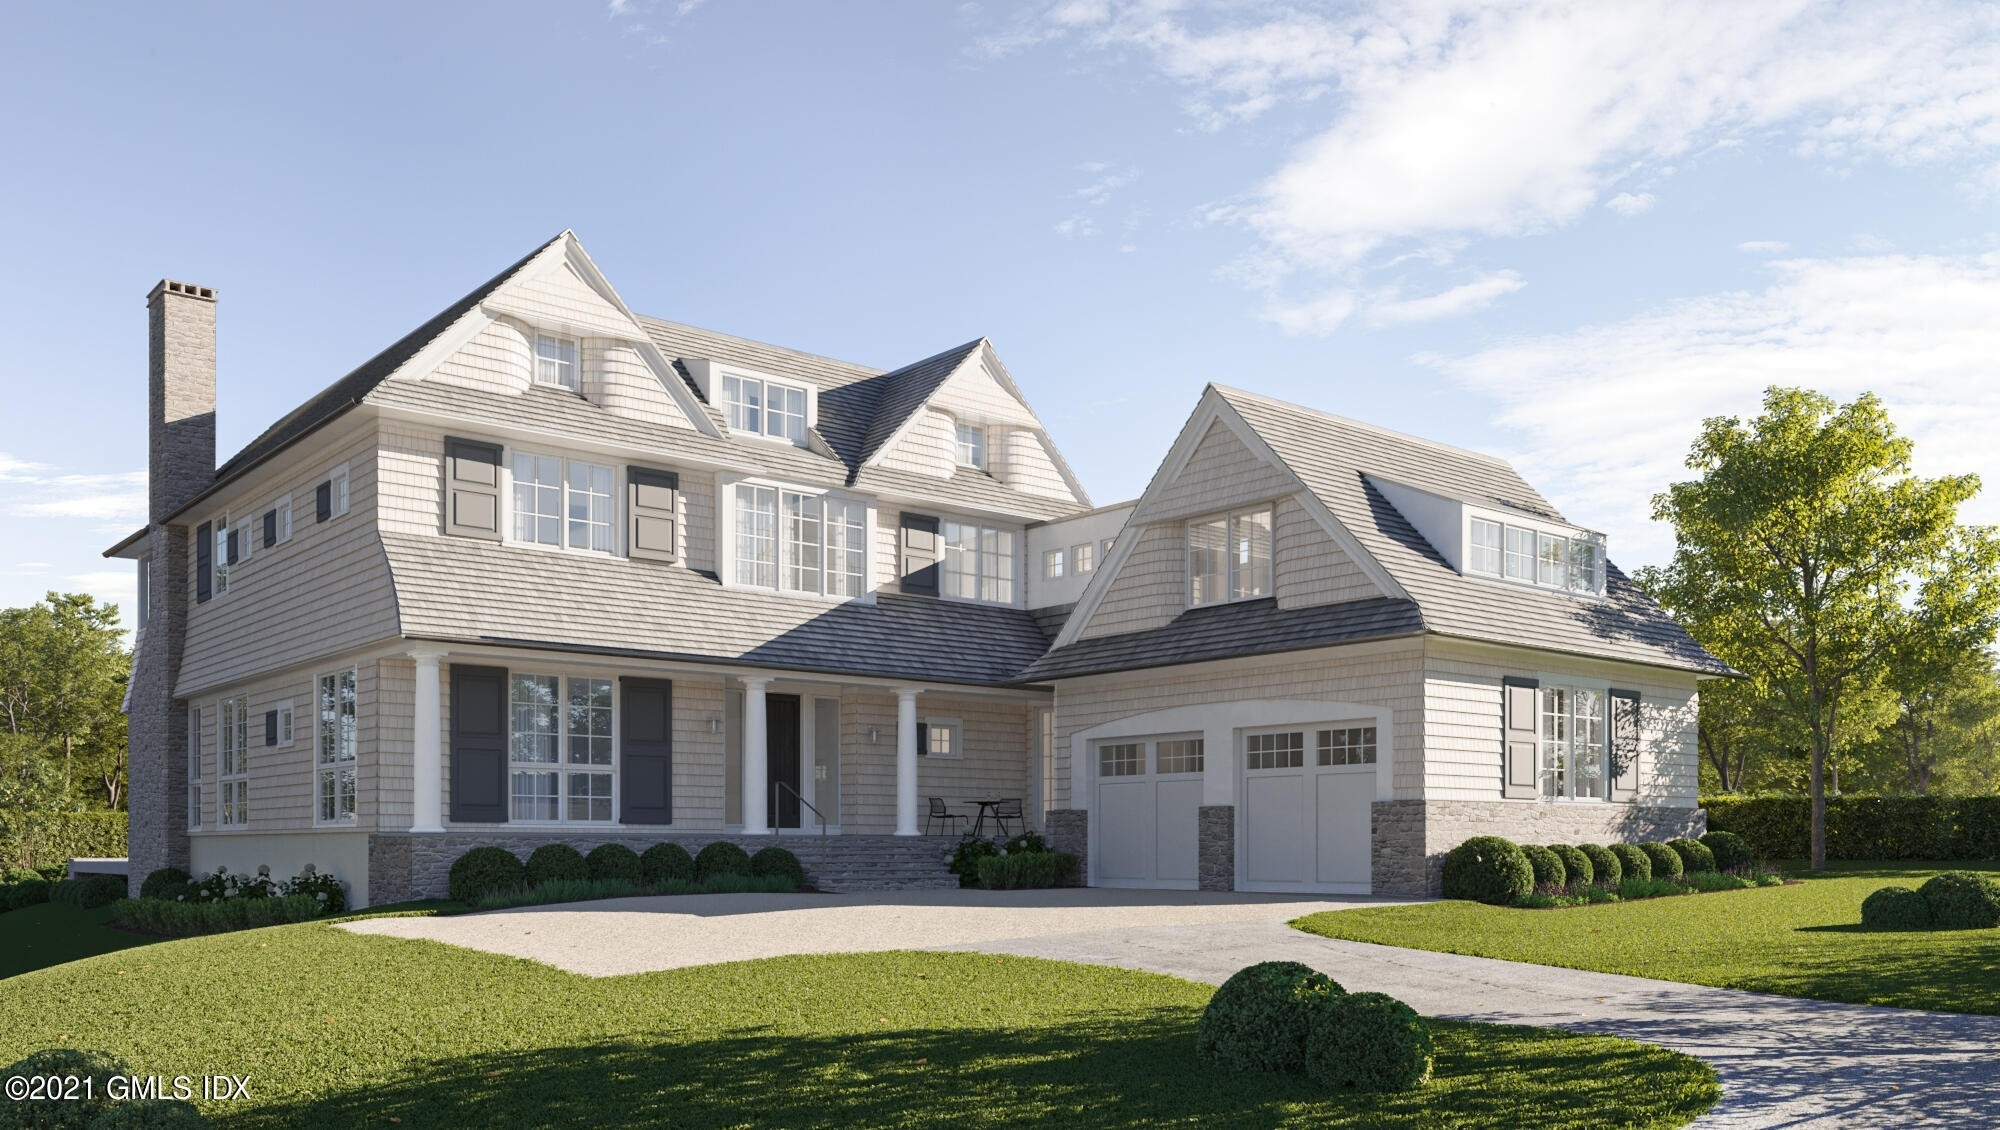 Single Family Home for Sale at Indian Harbor, Greenwich, CT 06830